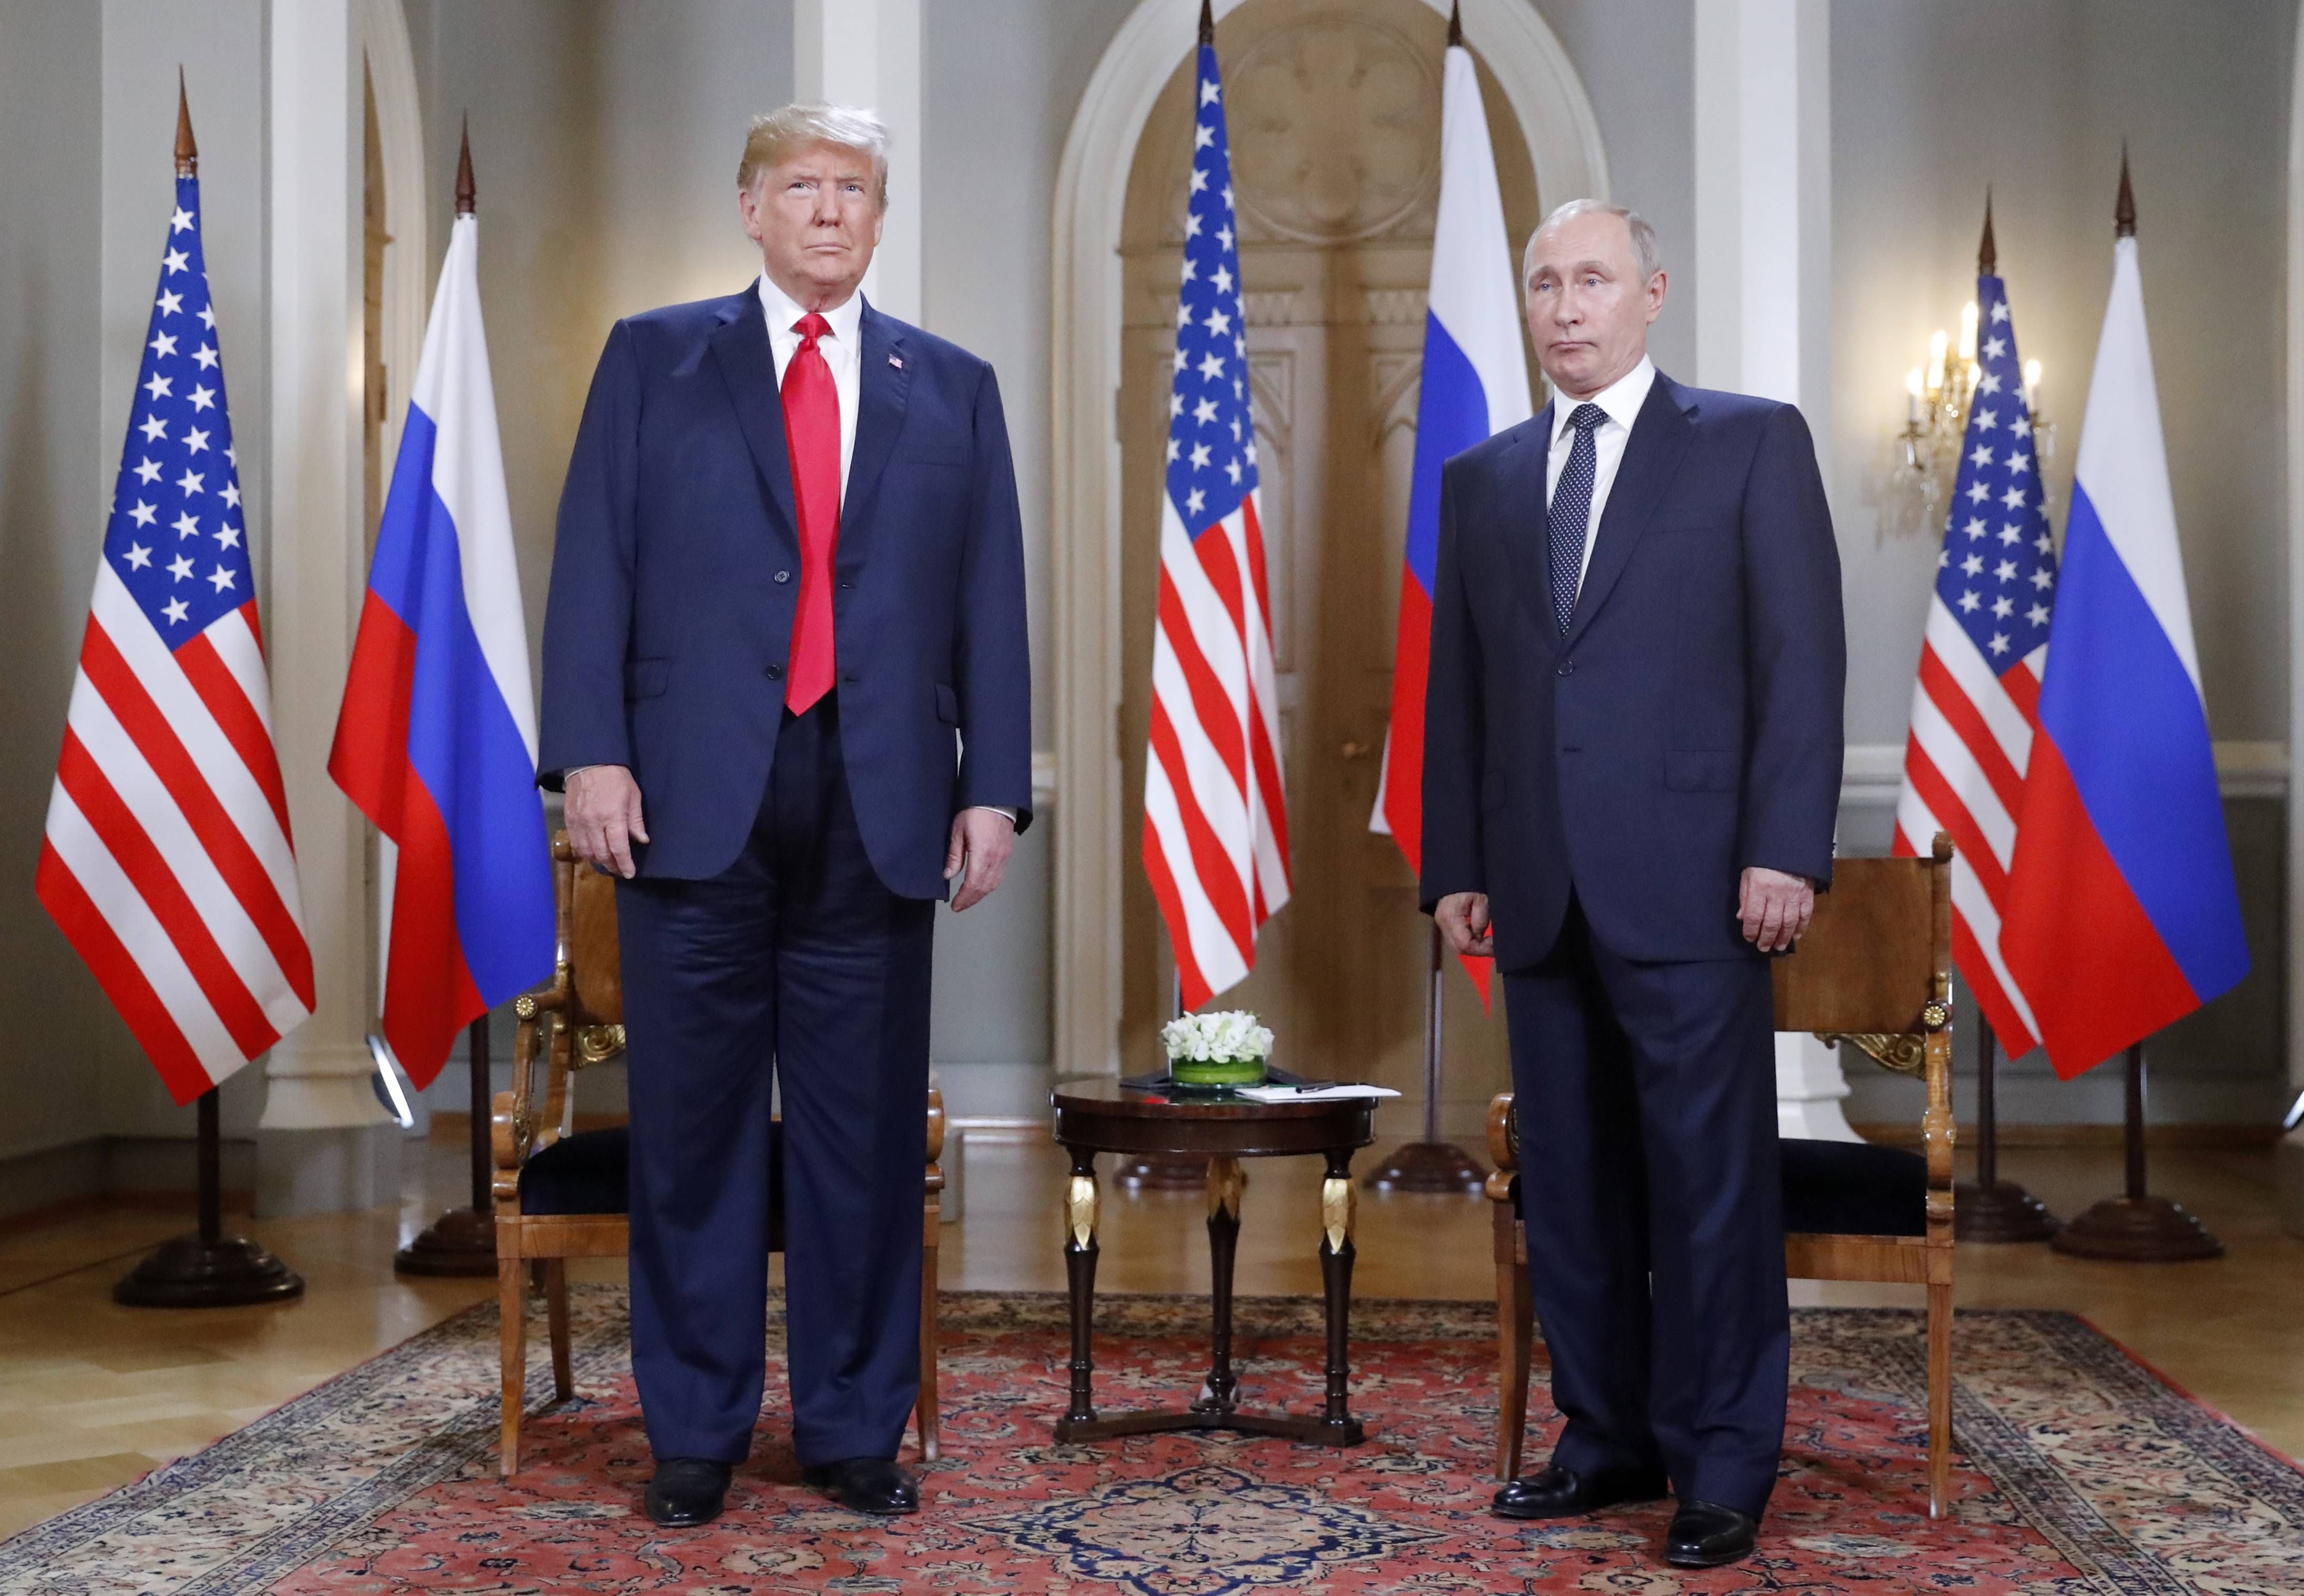 U.S. President Donald Trump, left, and Russian President Vladimir Putin pose for a photograph at the beginning of a one-on-one meeting at the Presidential Palace in Helsinki, Finland, Monday.